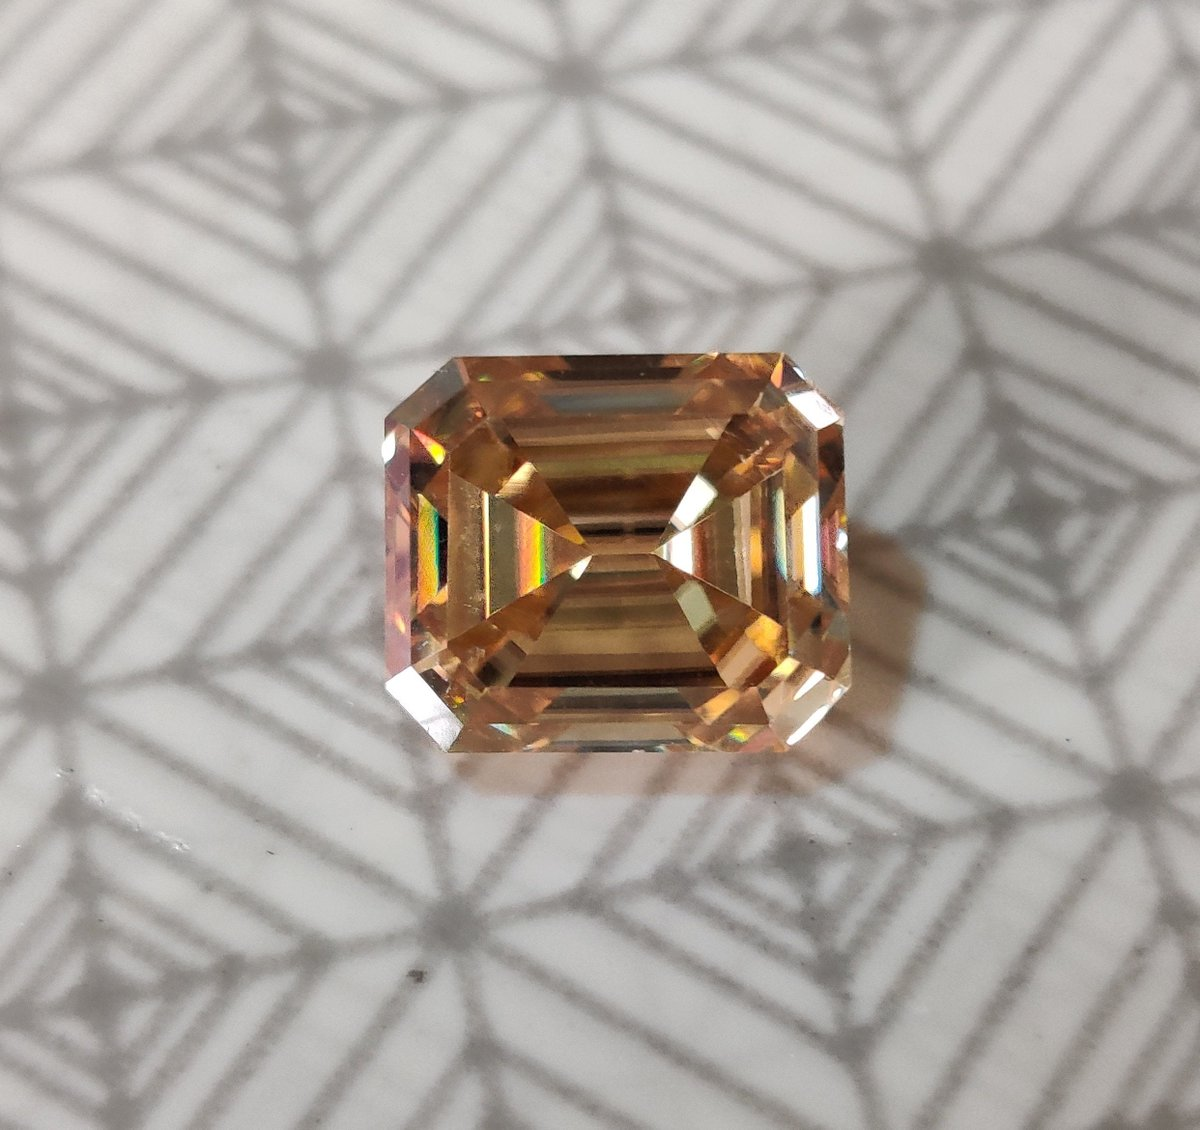 Excited to share the latest addition to my #etsy shop: 3.50 Ct Light Yellow Emerald Cut Loose Moissanite 9.26 X 7.98 X 5.38 mm VVS1 Clarity For Engagement Band, Mother's Day Sale https://t.co/uX5gP5VNQD #yellow #anniversary #valentinesday #emerald #beading #no #yes #ye https://t.co/1zzAiJ5OXe